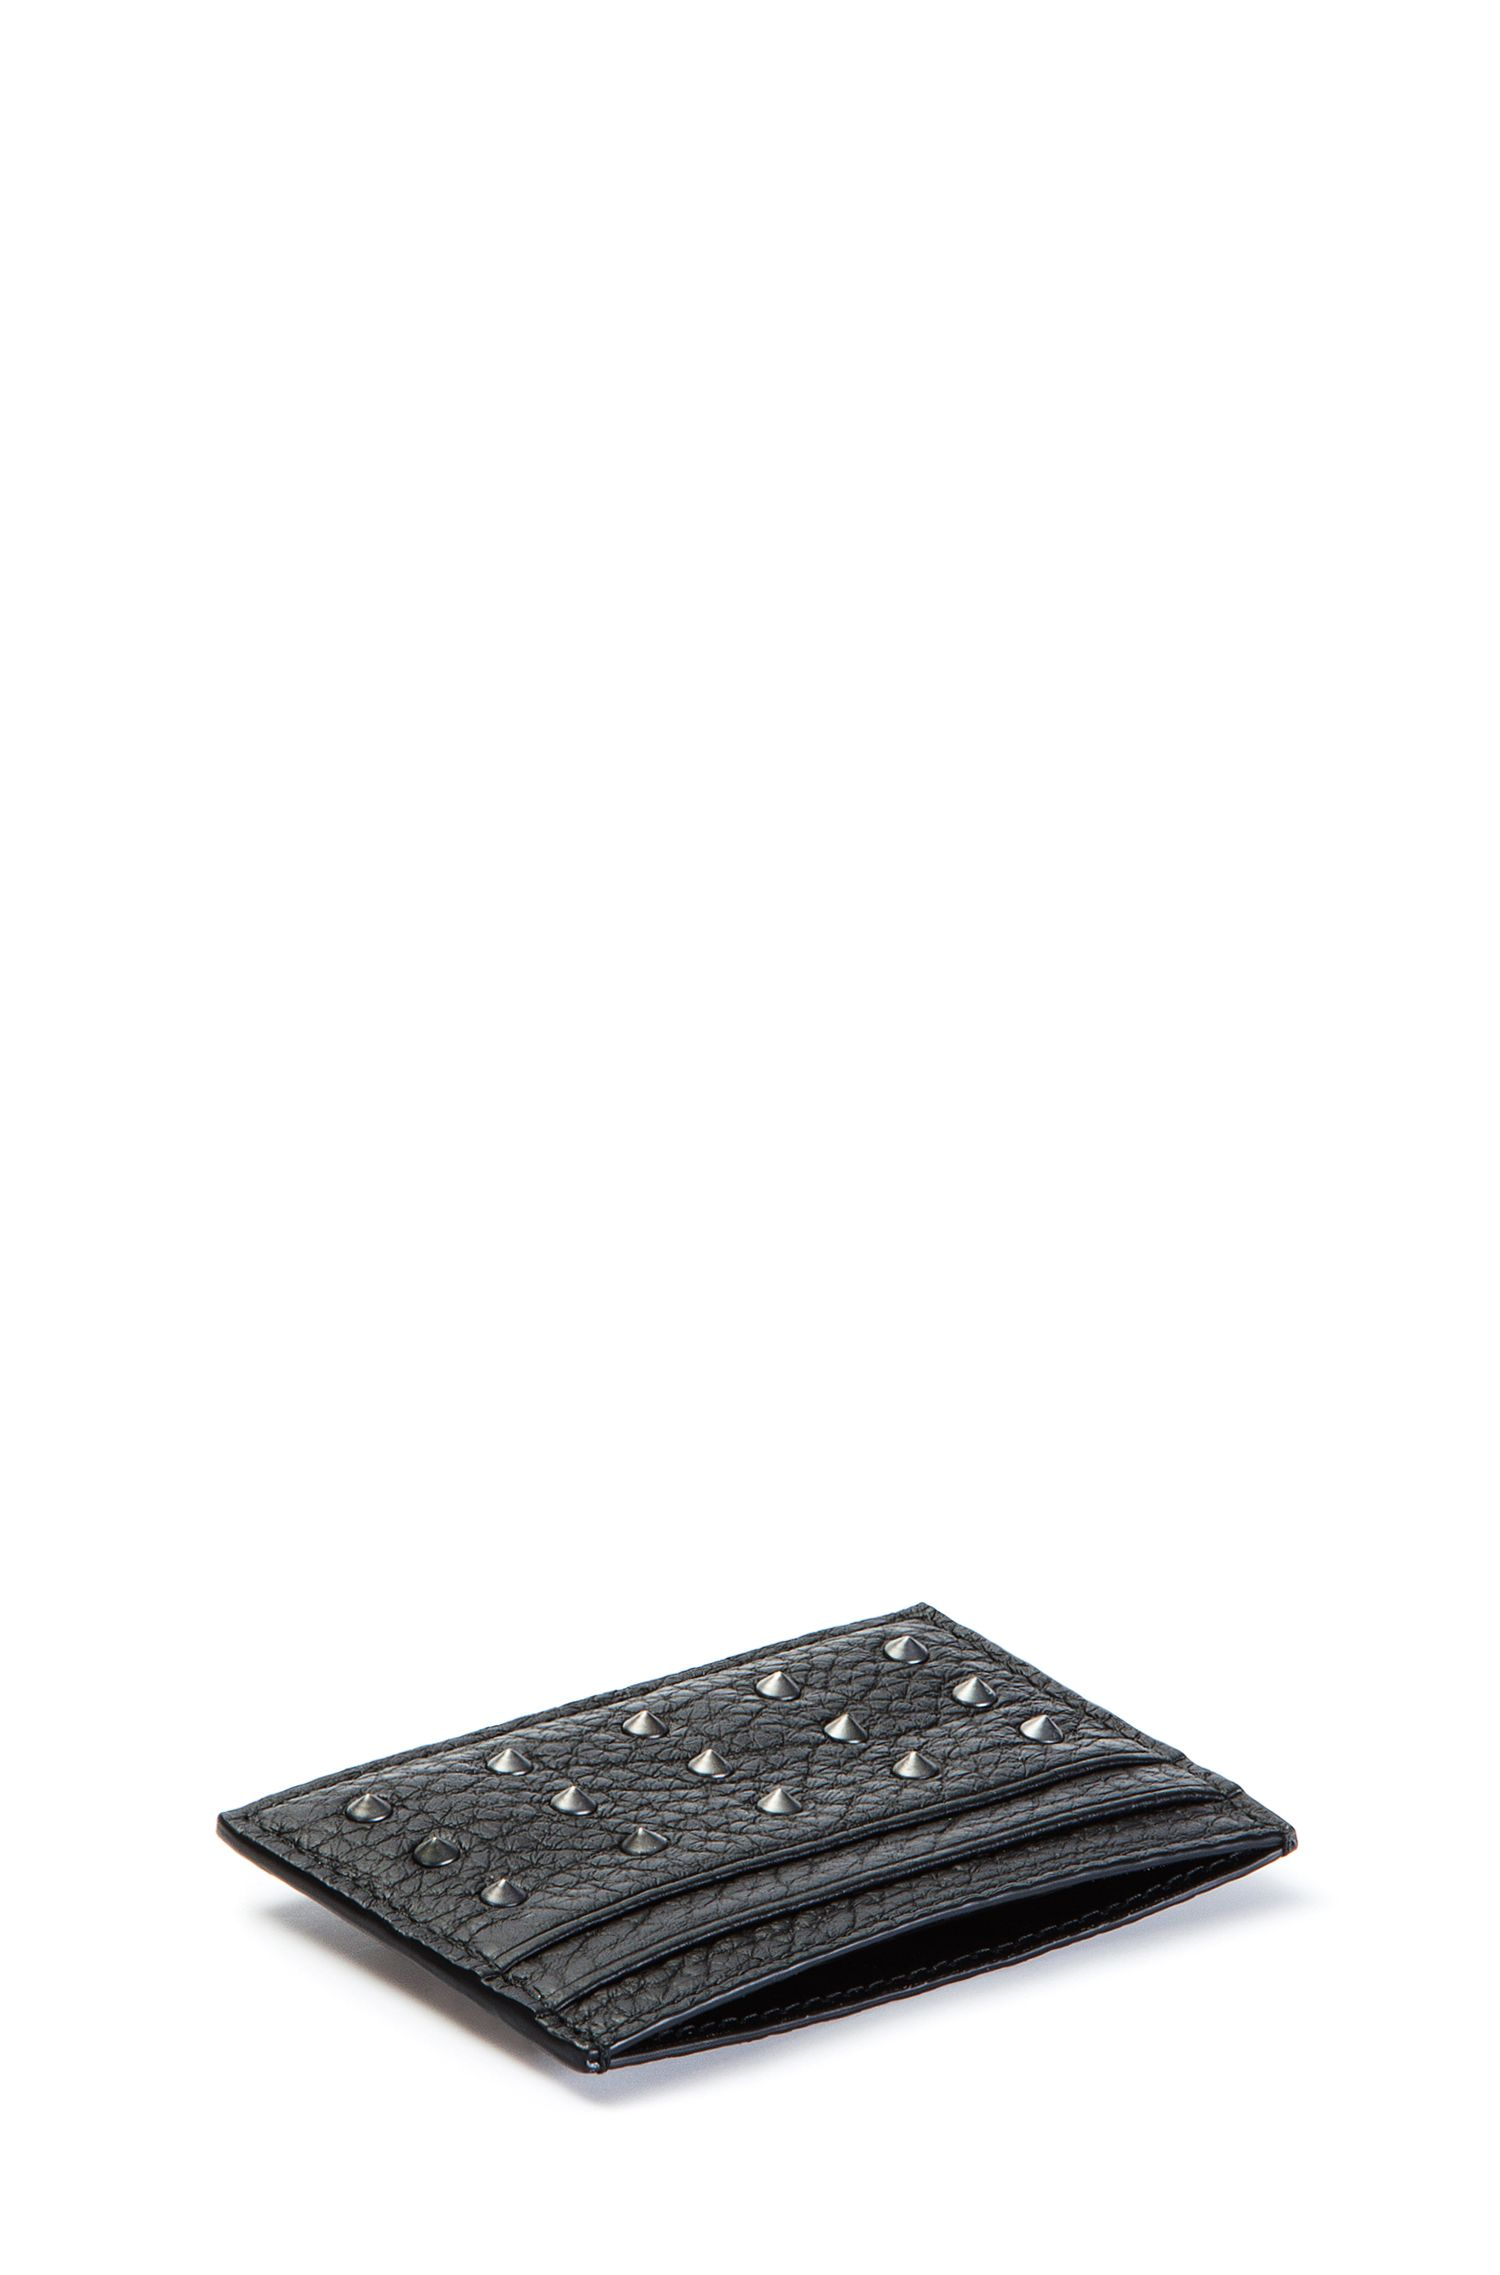 Studded Leather Cardholder | Victorian S S Card